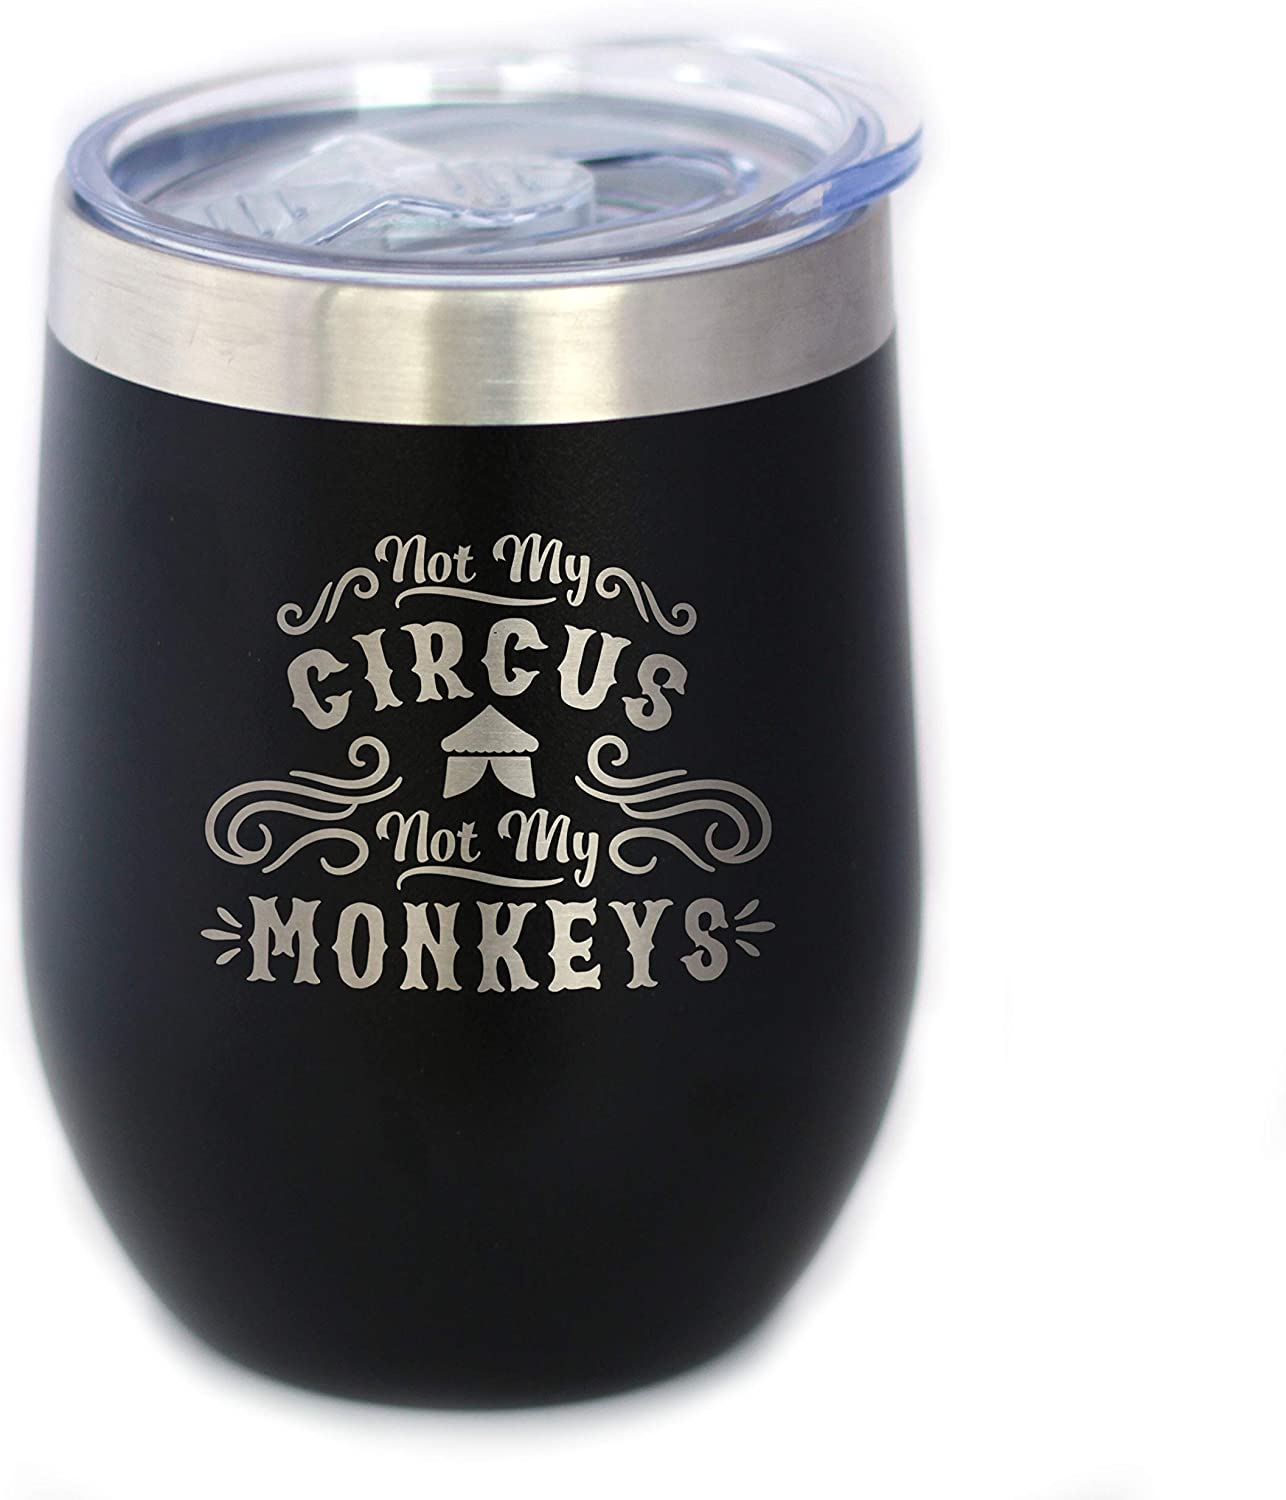 Not My Circus Not My Monkeys - Wine Tumbler with Sliding Lid - Stemless Stainless Steel Insulated Cup - Funny Retirement Gifts - Black